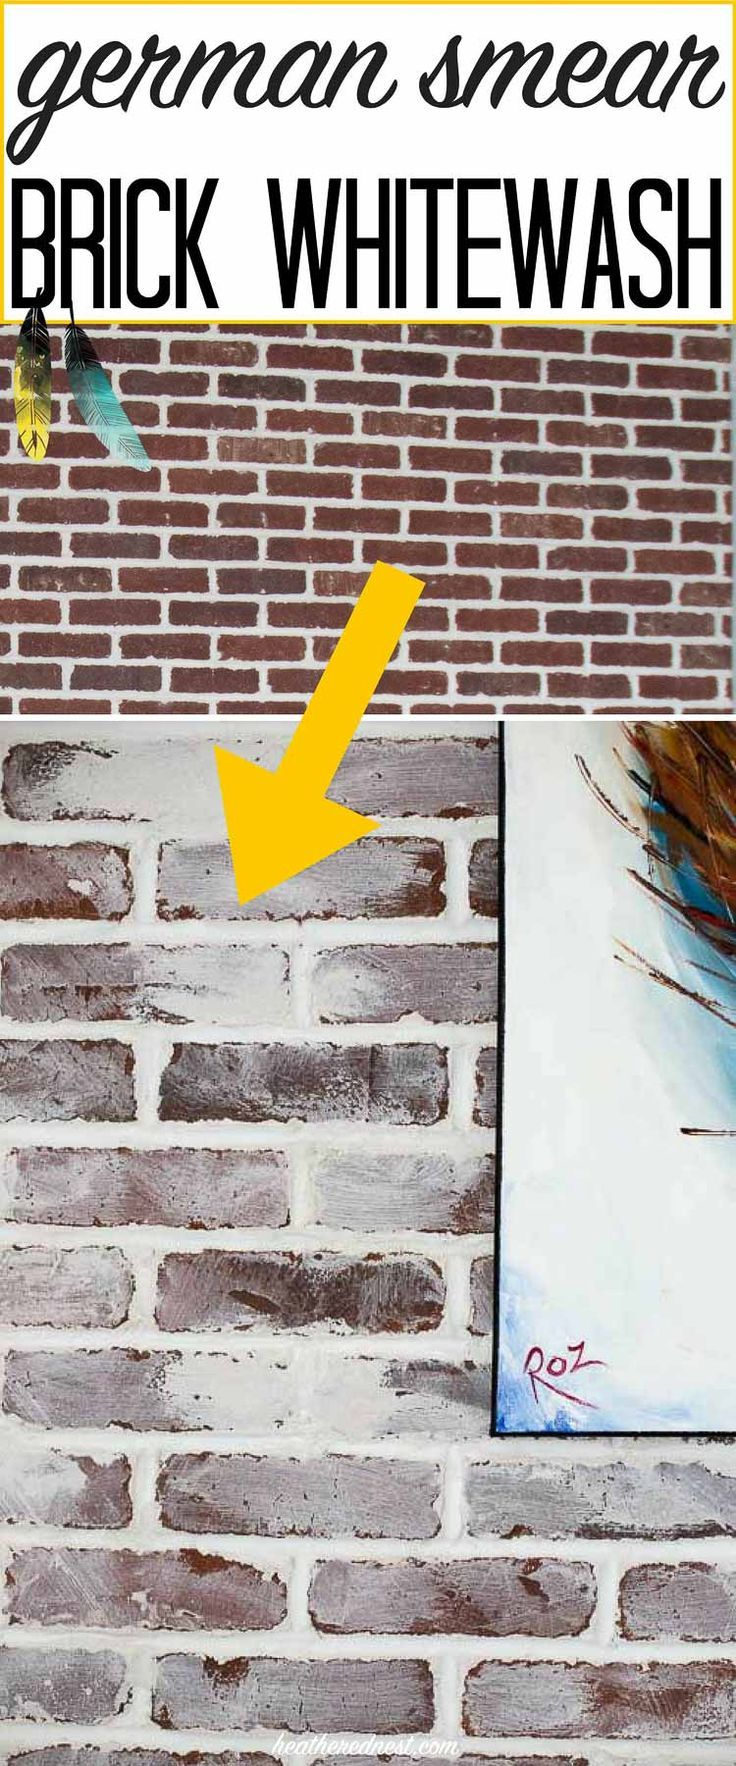 "How to do a german smear or ""mortar wash"" DIY brick whitewash on your brick fireplace or other brick surfaces. This DIY project is inexpensive & easy to do!"